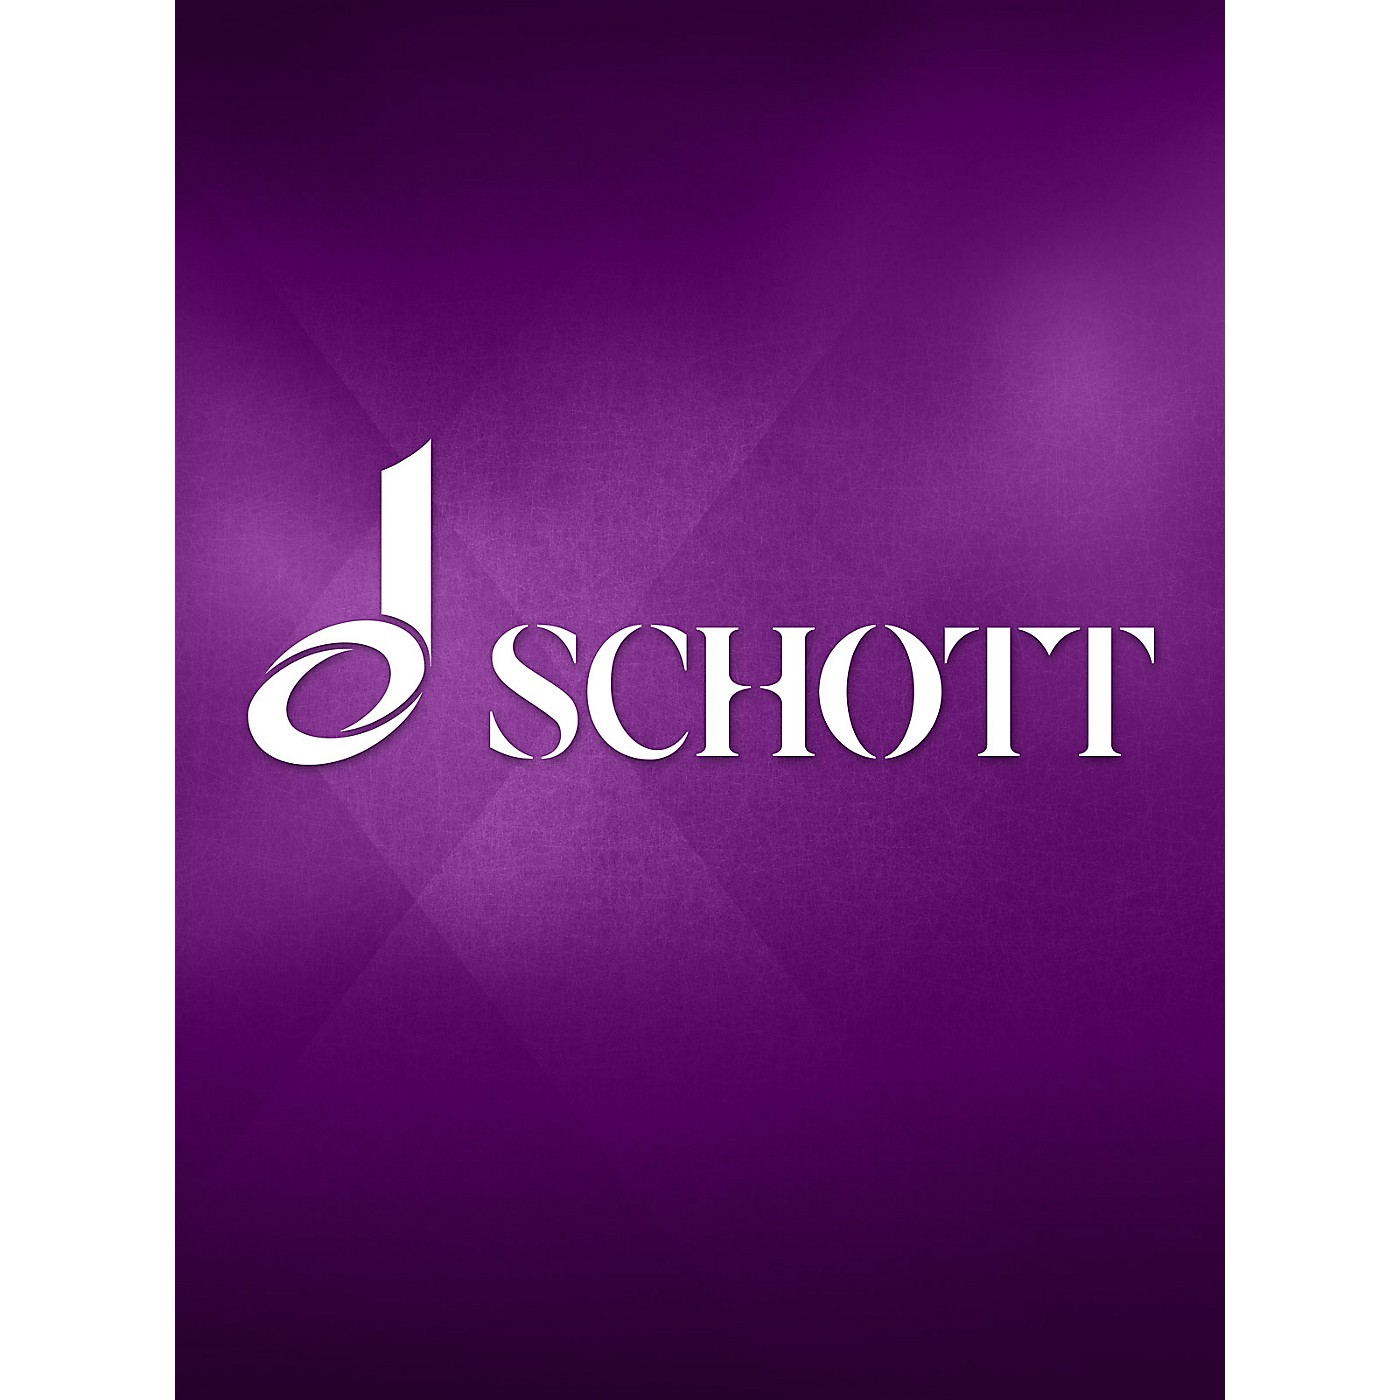 Schott Boulevard Solitude (Piano/Vocal Score) Schott Series thumbnail